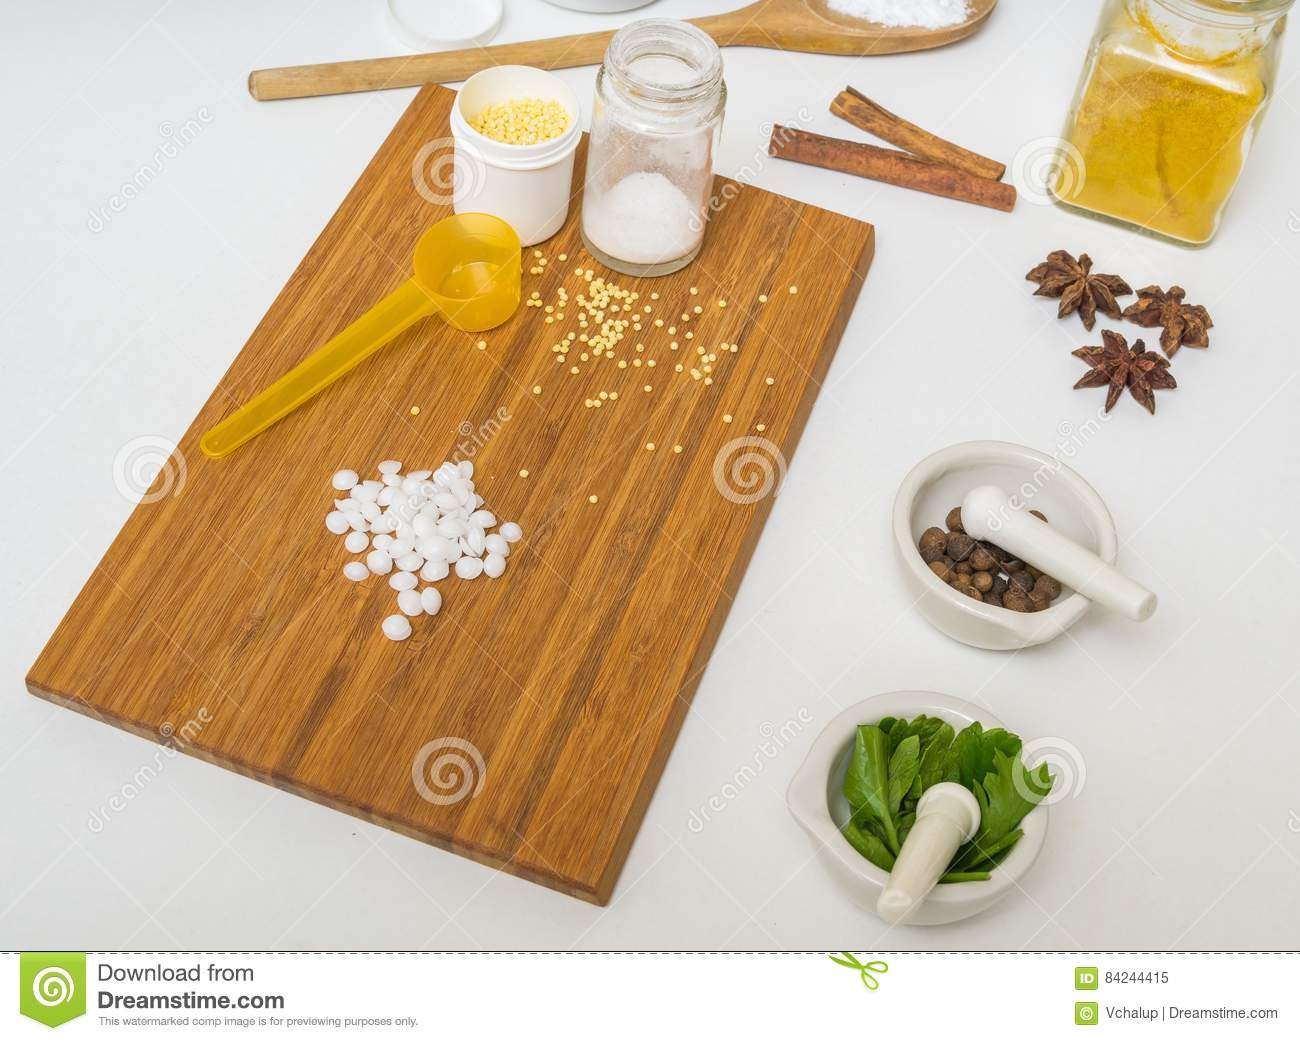 Skincare concept. Ingredients for homemade cosmetics and makeup